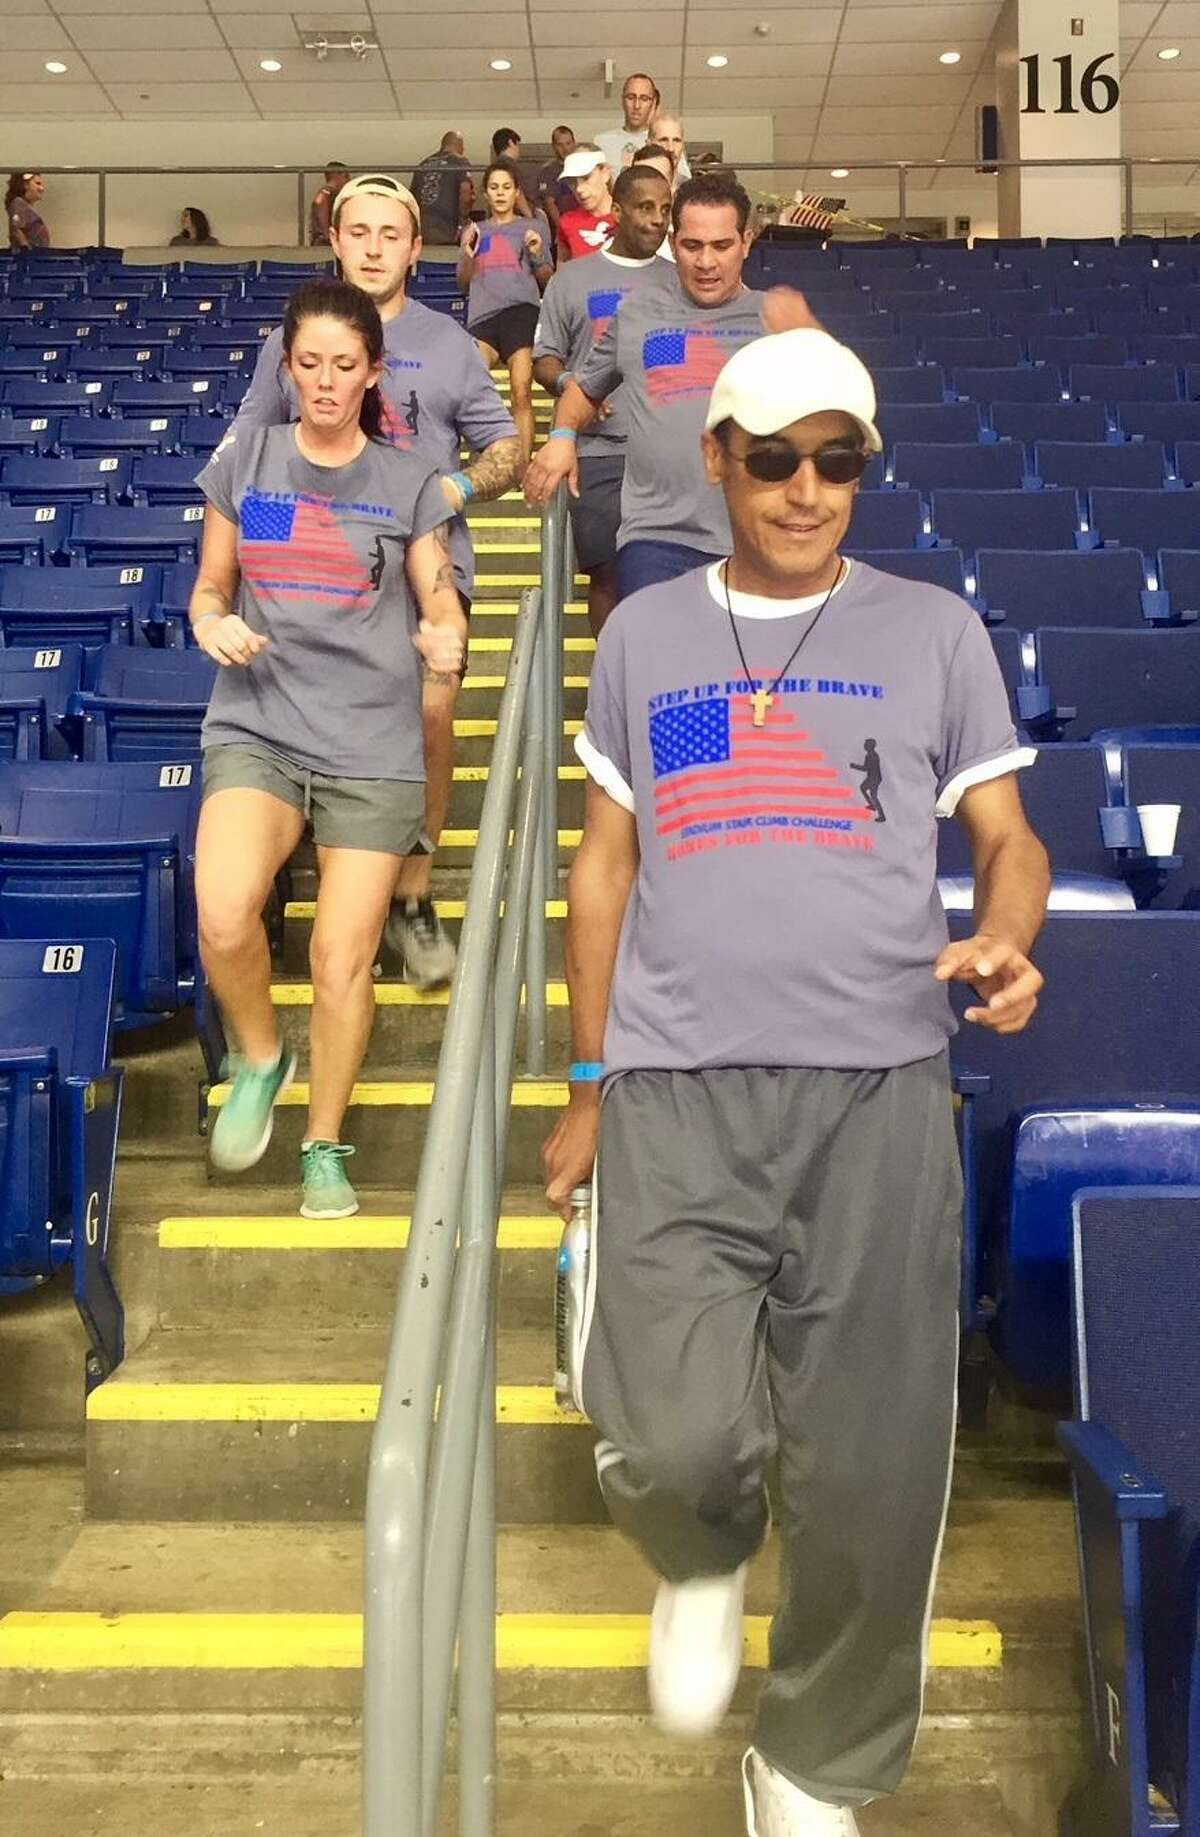 Registration is now open for the 5th Annual Step Up For The Brave Stair Climb Challenge. This unique event, hosted by Homes for the Brave, takes place Saturday, Sept. 14, 2019 at Webster Bank Arena. www.HomesForTheBrave.org